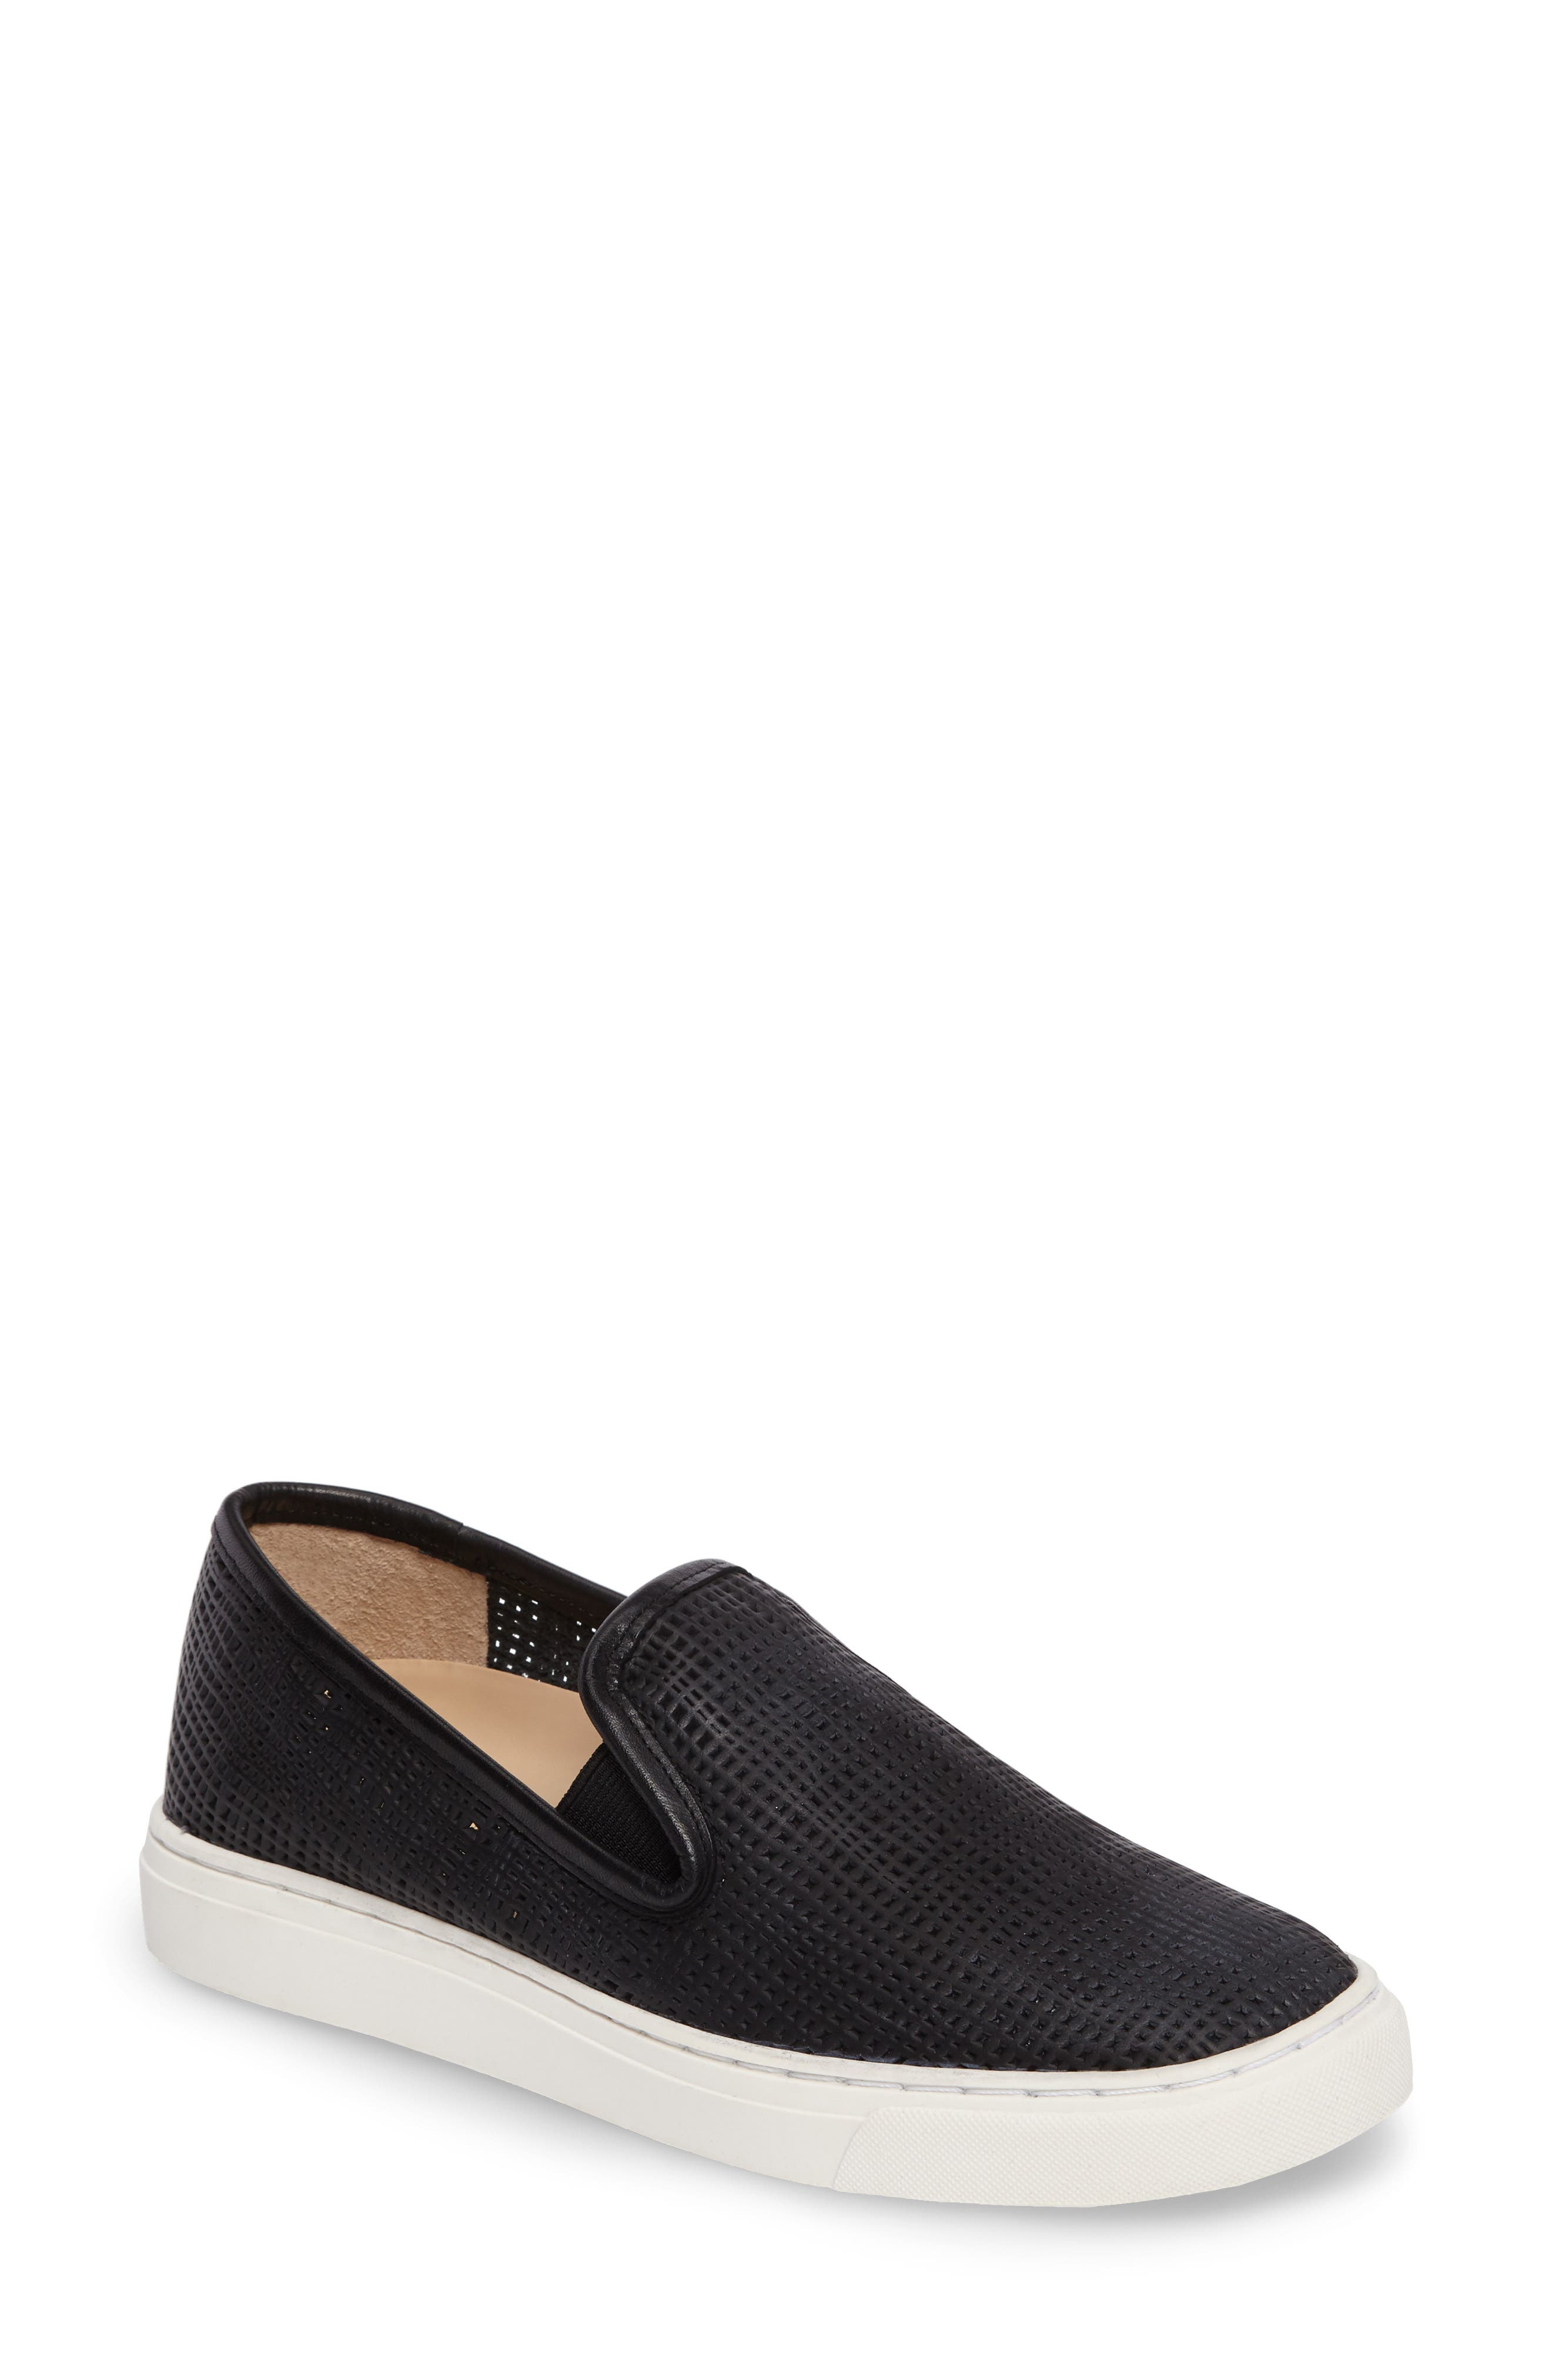 Becker Perforated Slip-On Sneaker,                             Main thumbnail 1, color,                             001